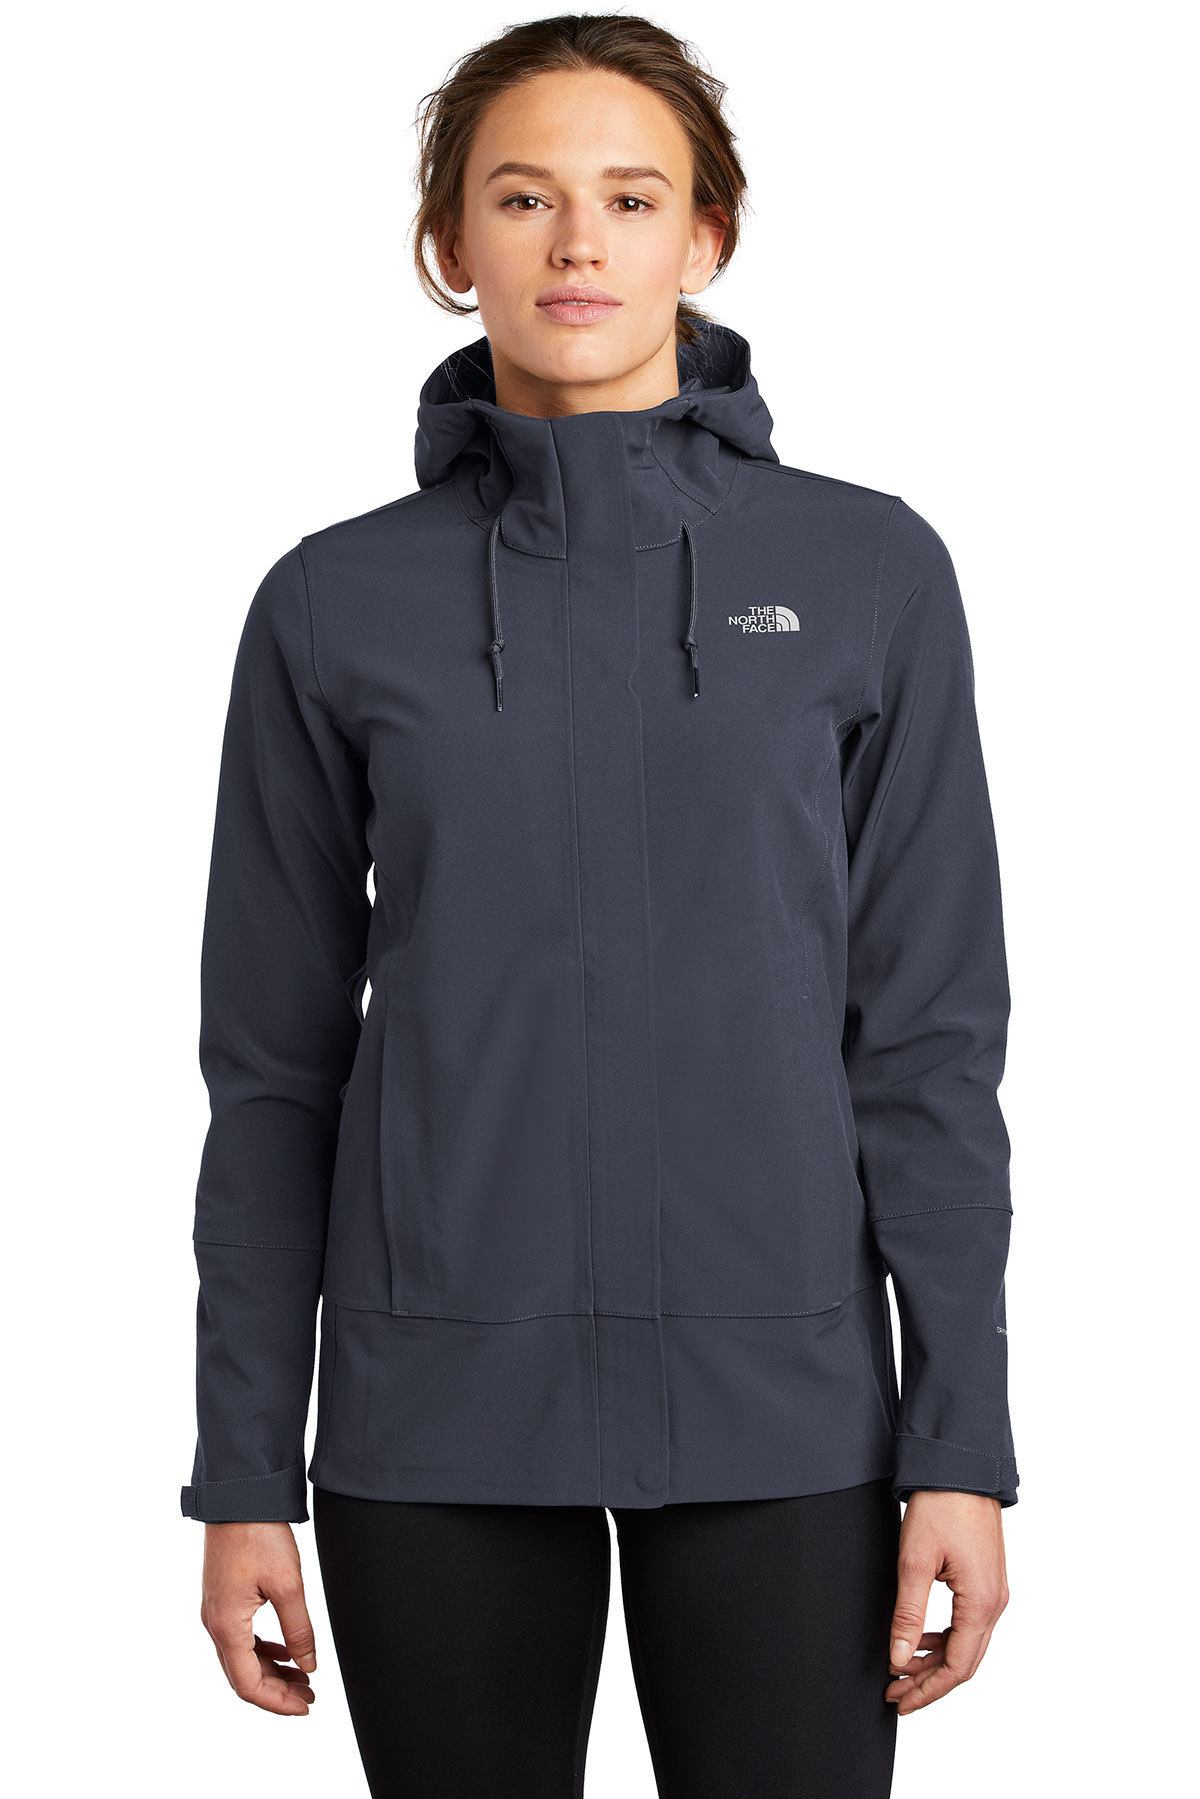 The North Face NF0A47FJ - Ladies Apex DryVent Jacket